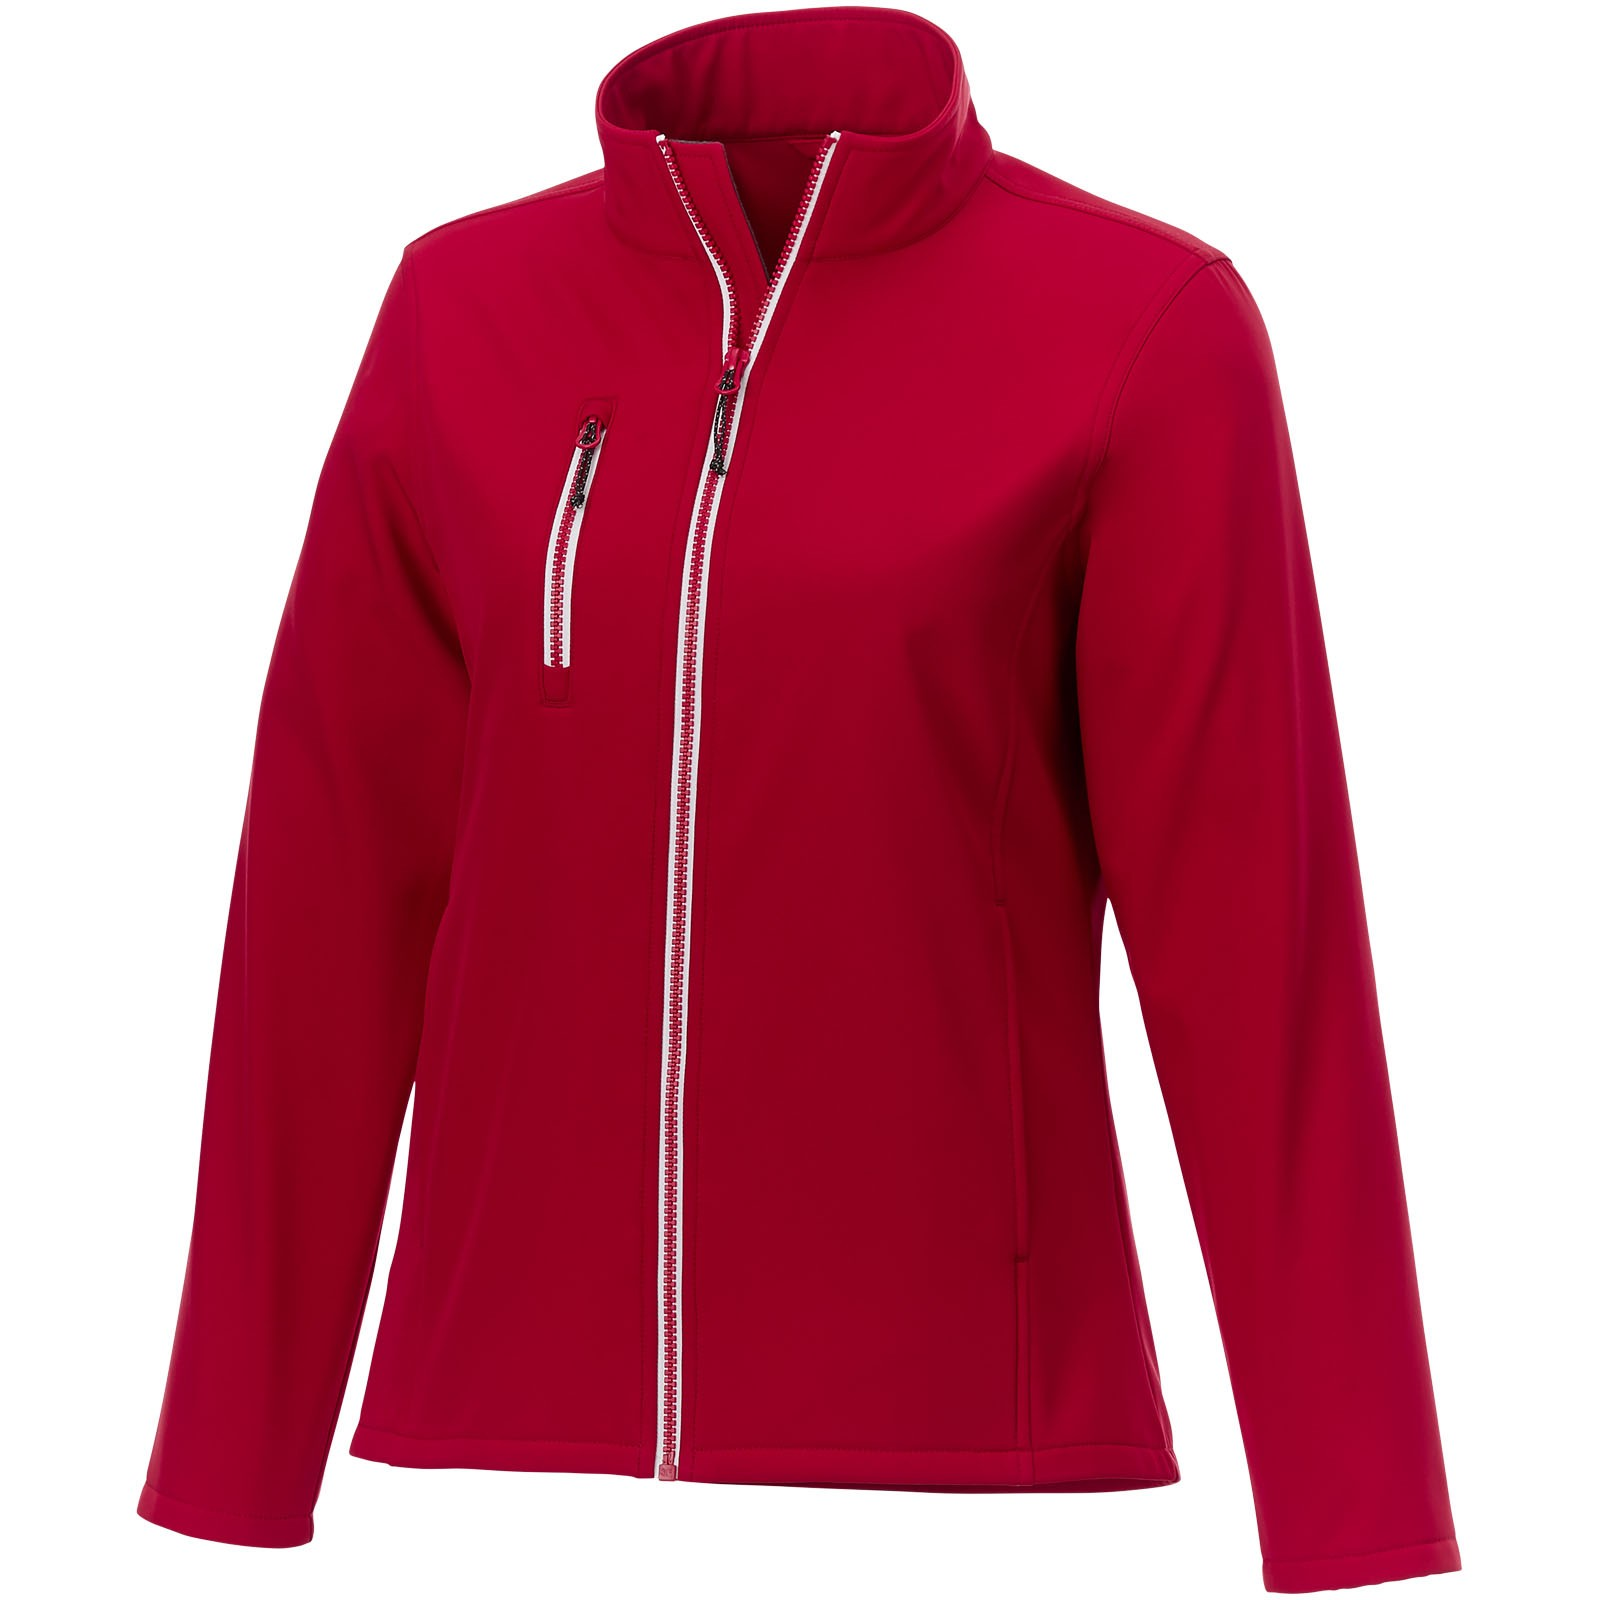 Orion women's softshell jacket - Red / XS